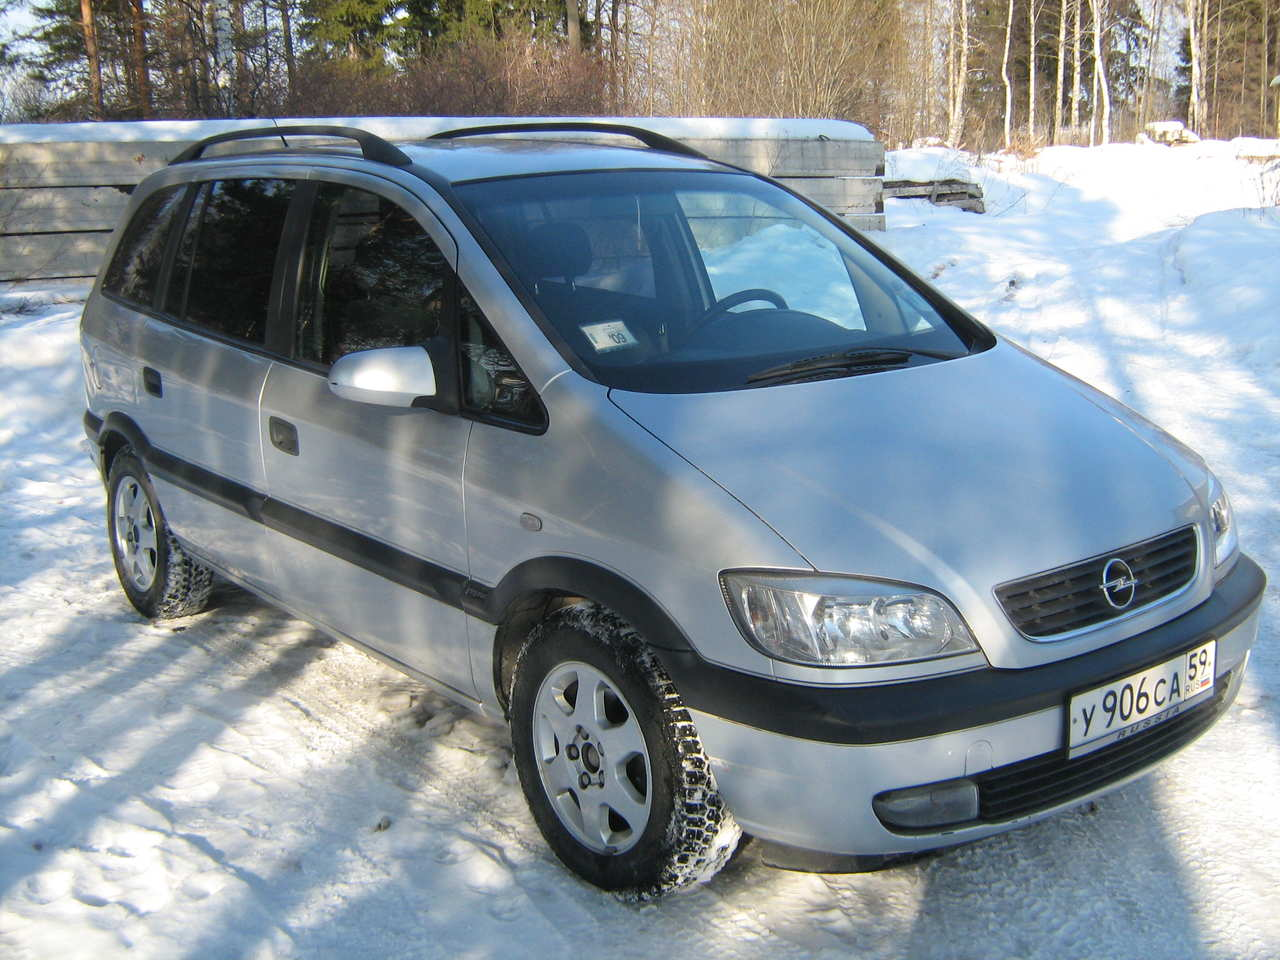 used 2001 opel zafira photos 1995cc diesel ff manual for sale. Black Bedroom Furniture Sets. Home Design Ideas